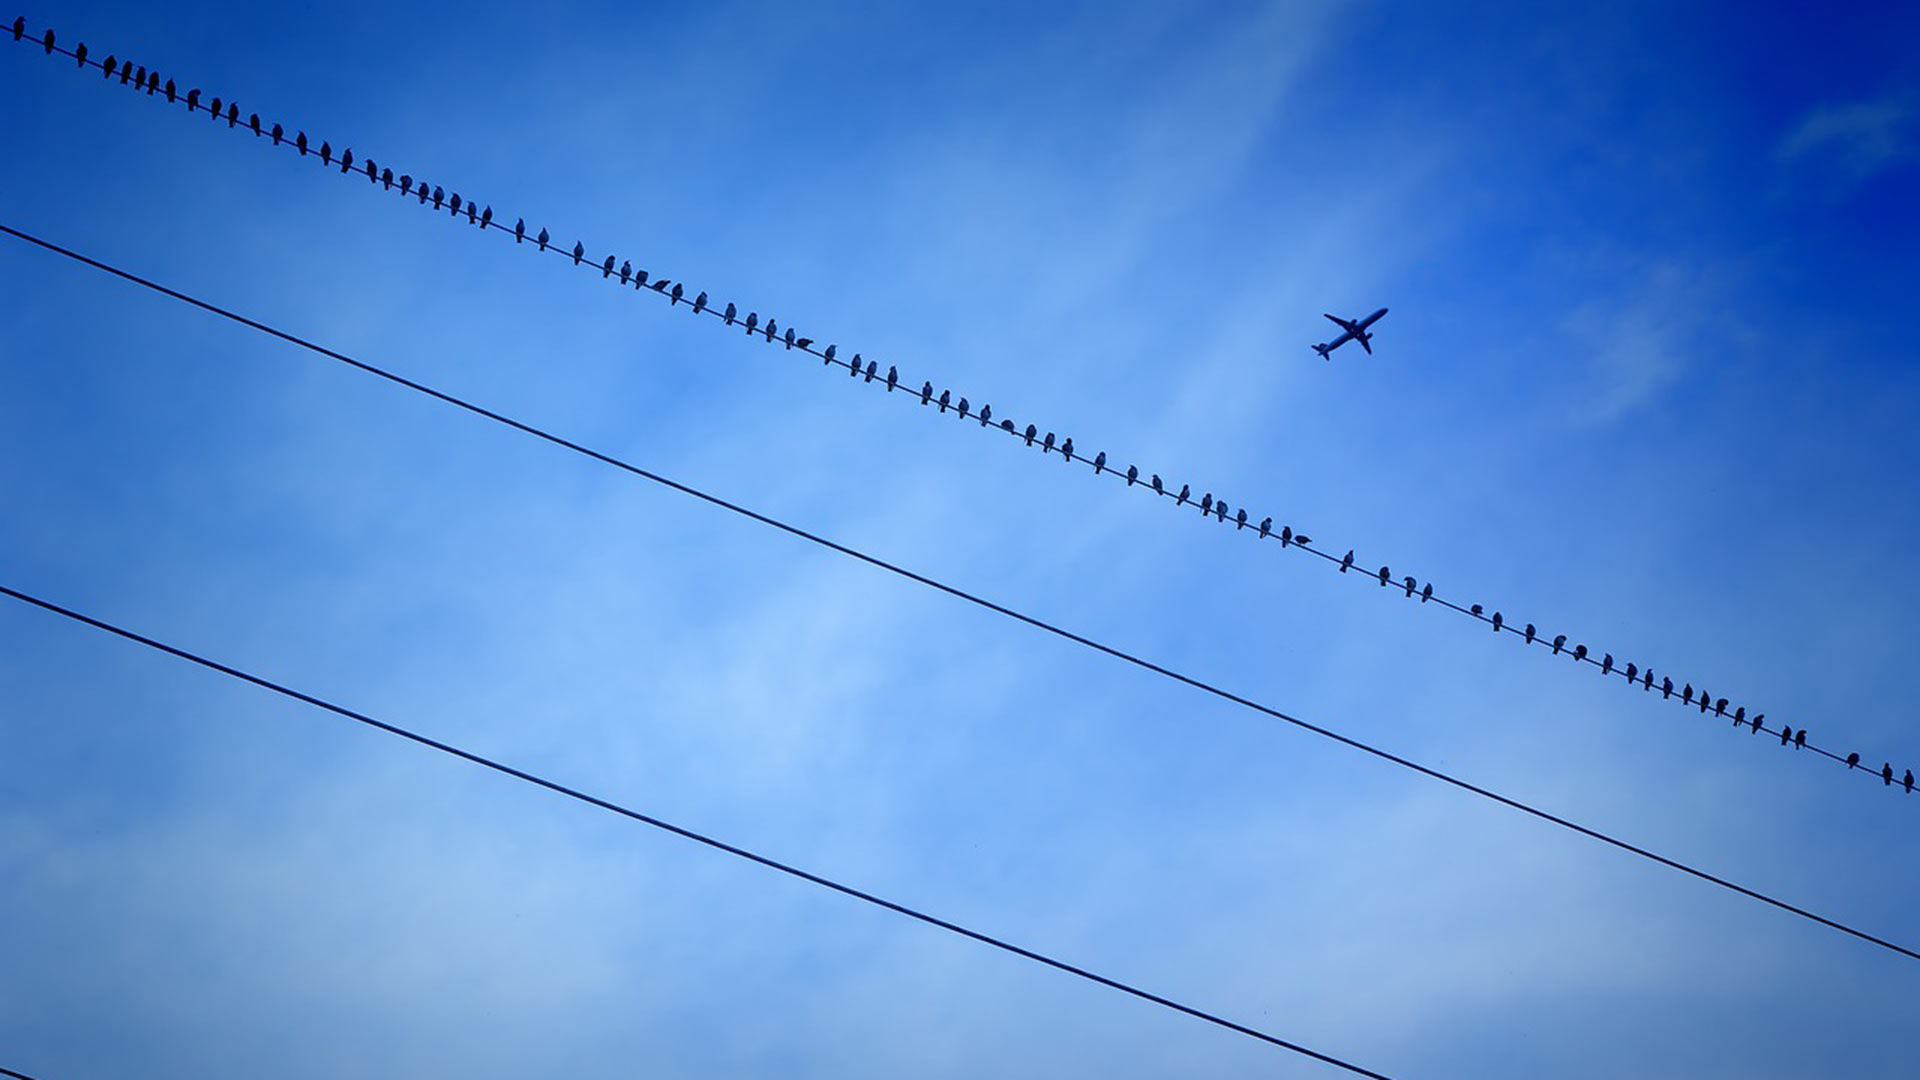 A plane flies overhead as birds perch on a power line.